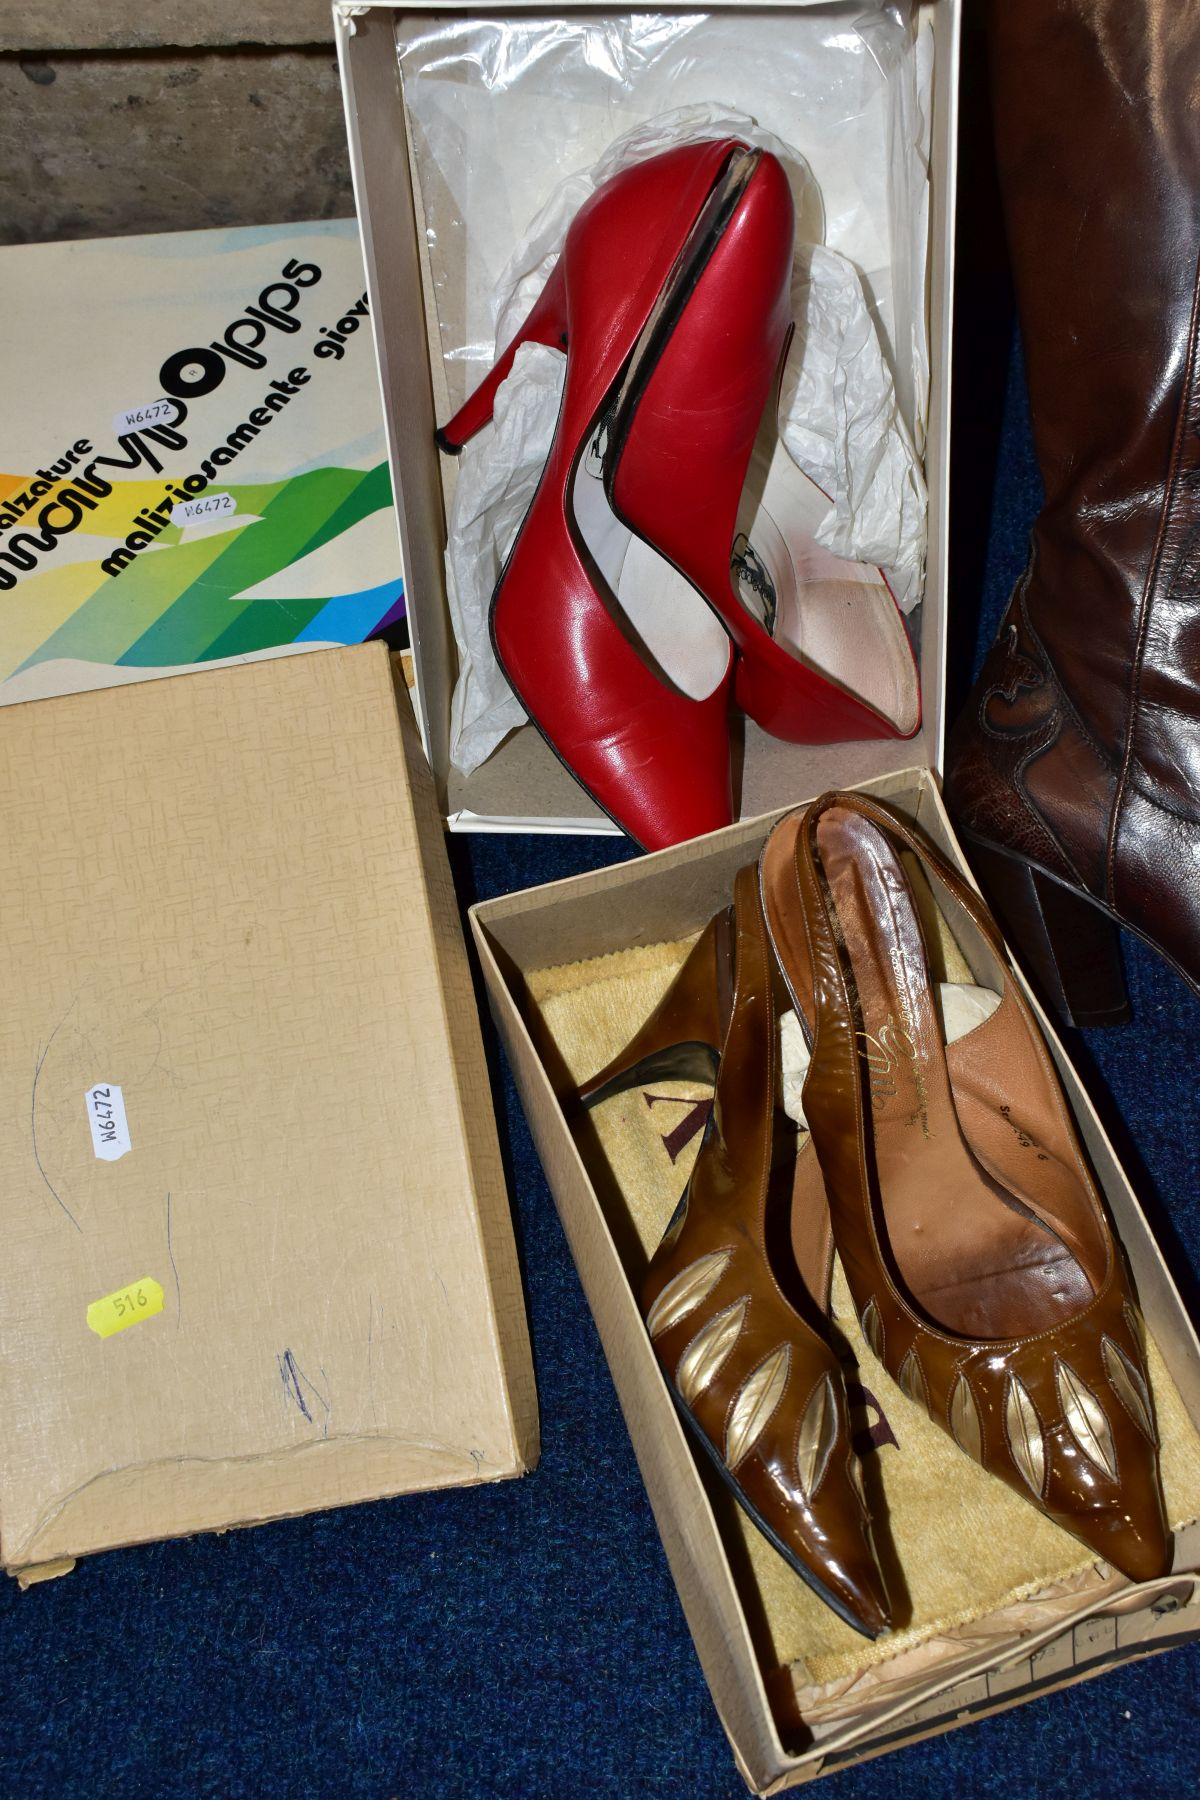 A QUANTITY OF LADIES SHOES AND HANDBAGS, EVENING BAGS, BOXED AND LOOSE, including a boxed pair of - Image 5 of 7